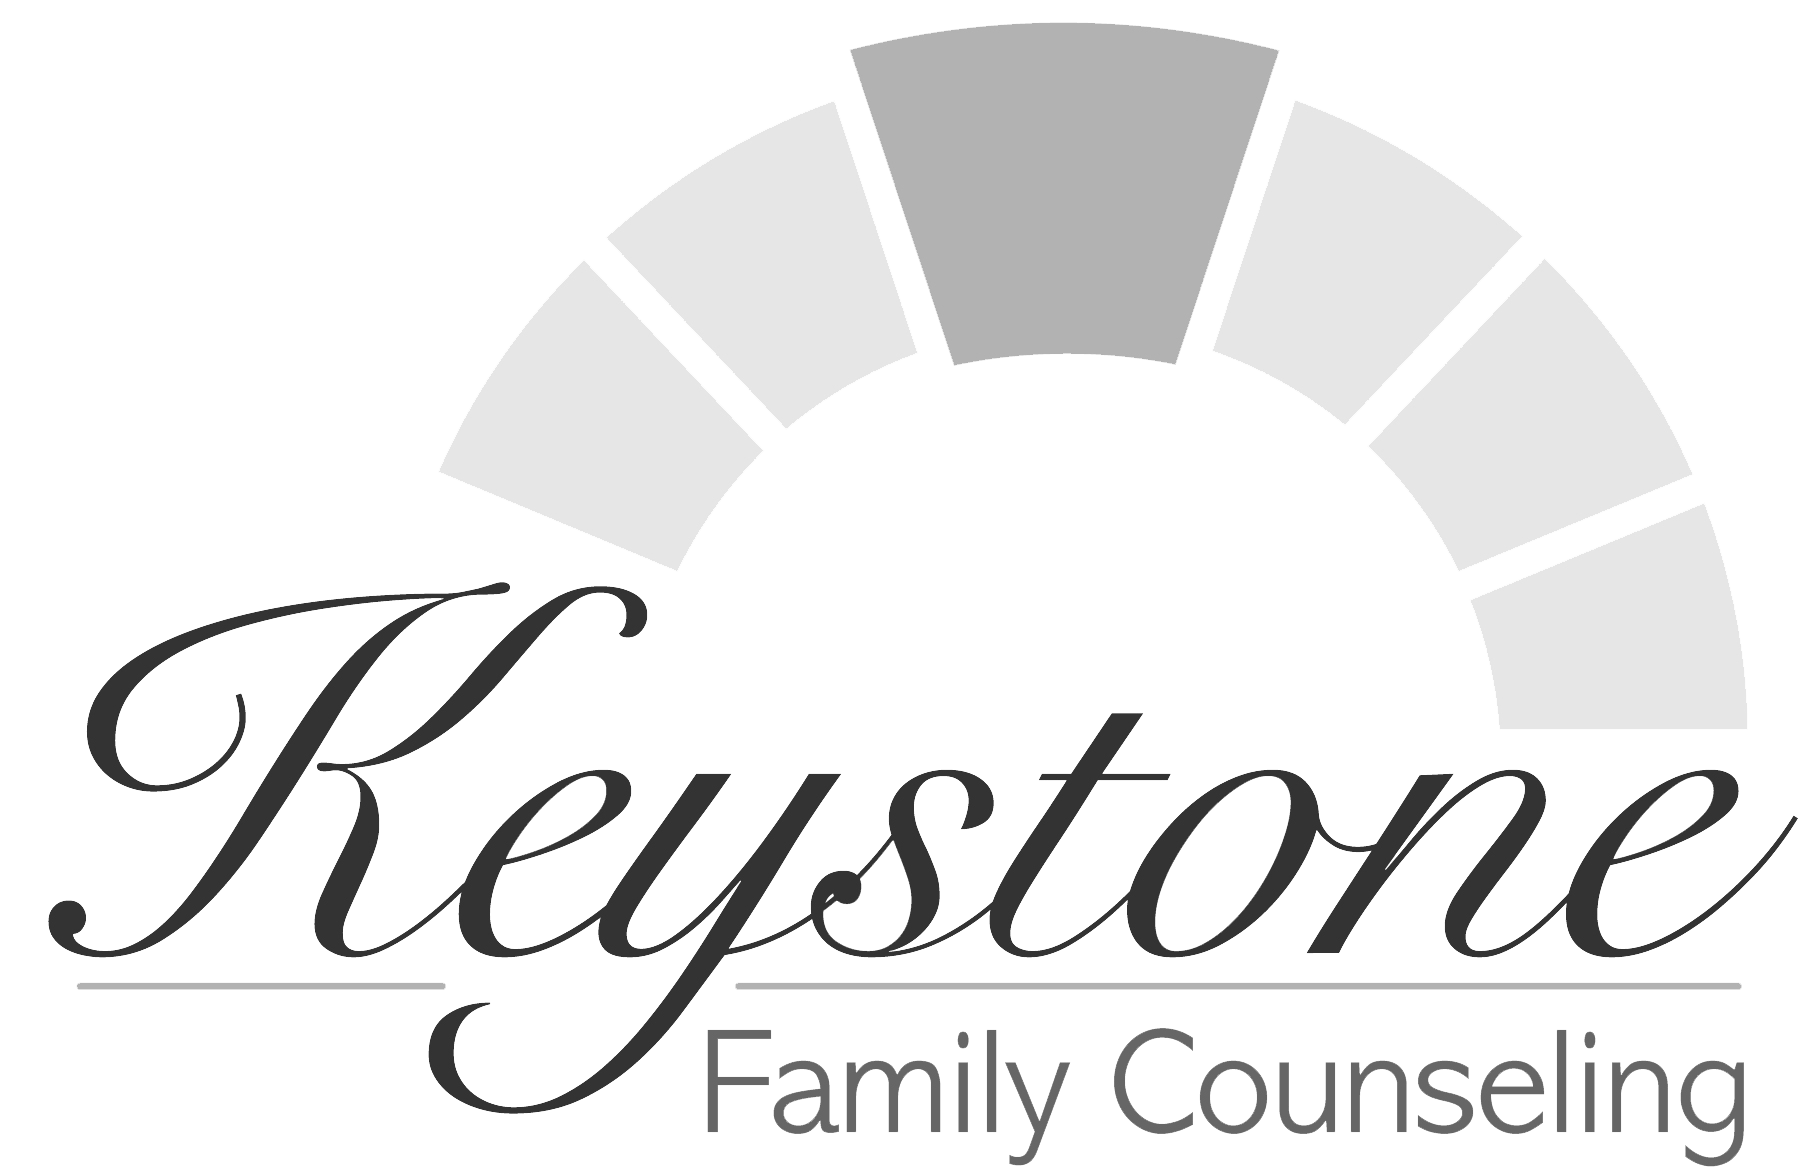 Keystone Family Counseling